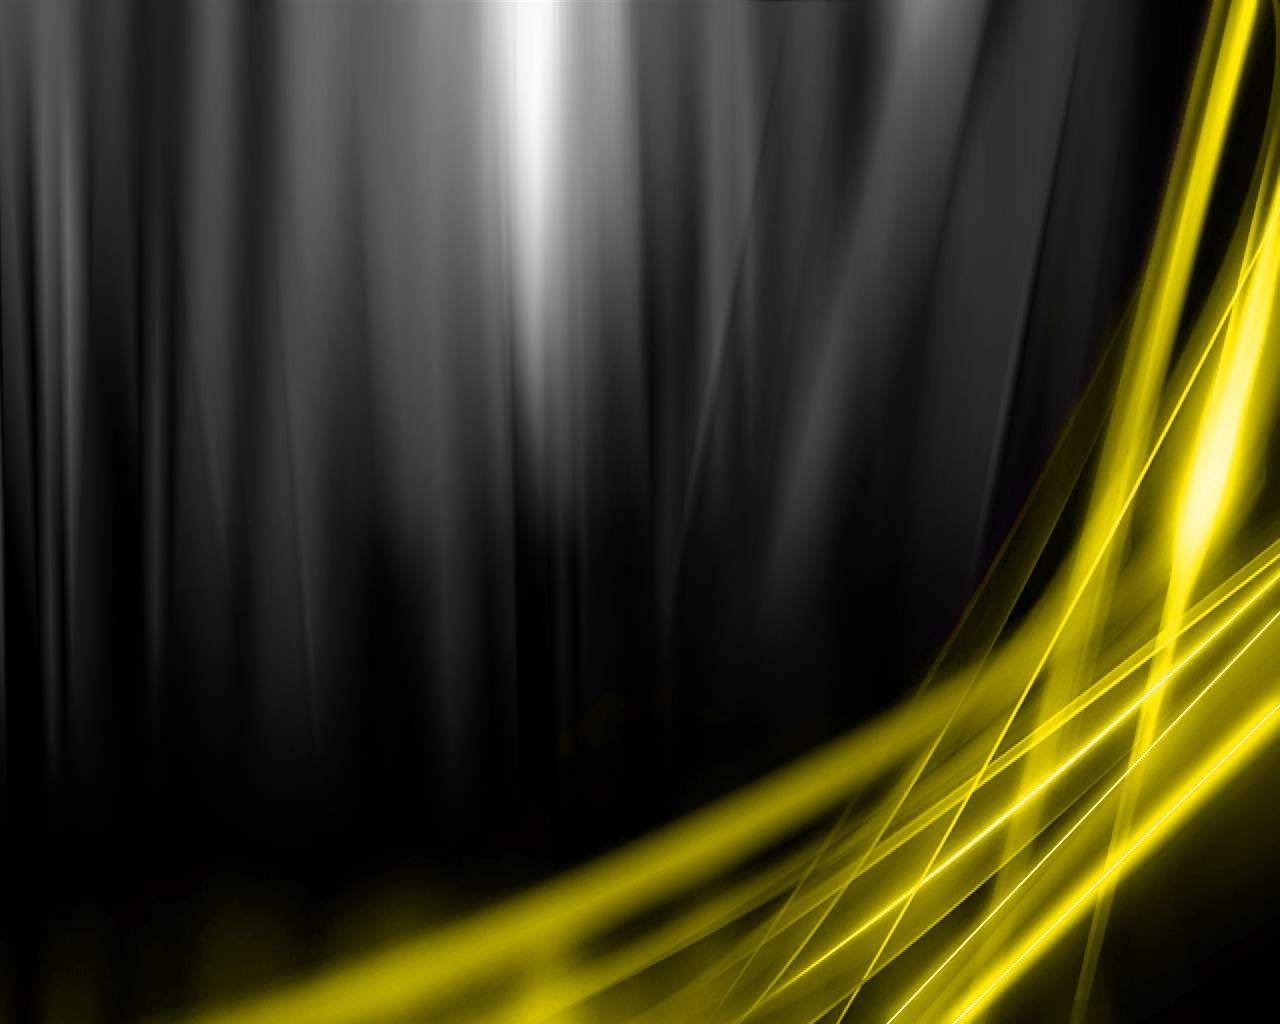 Unduh 6000+ Wallpaper Black White Yellow HD Terbaik